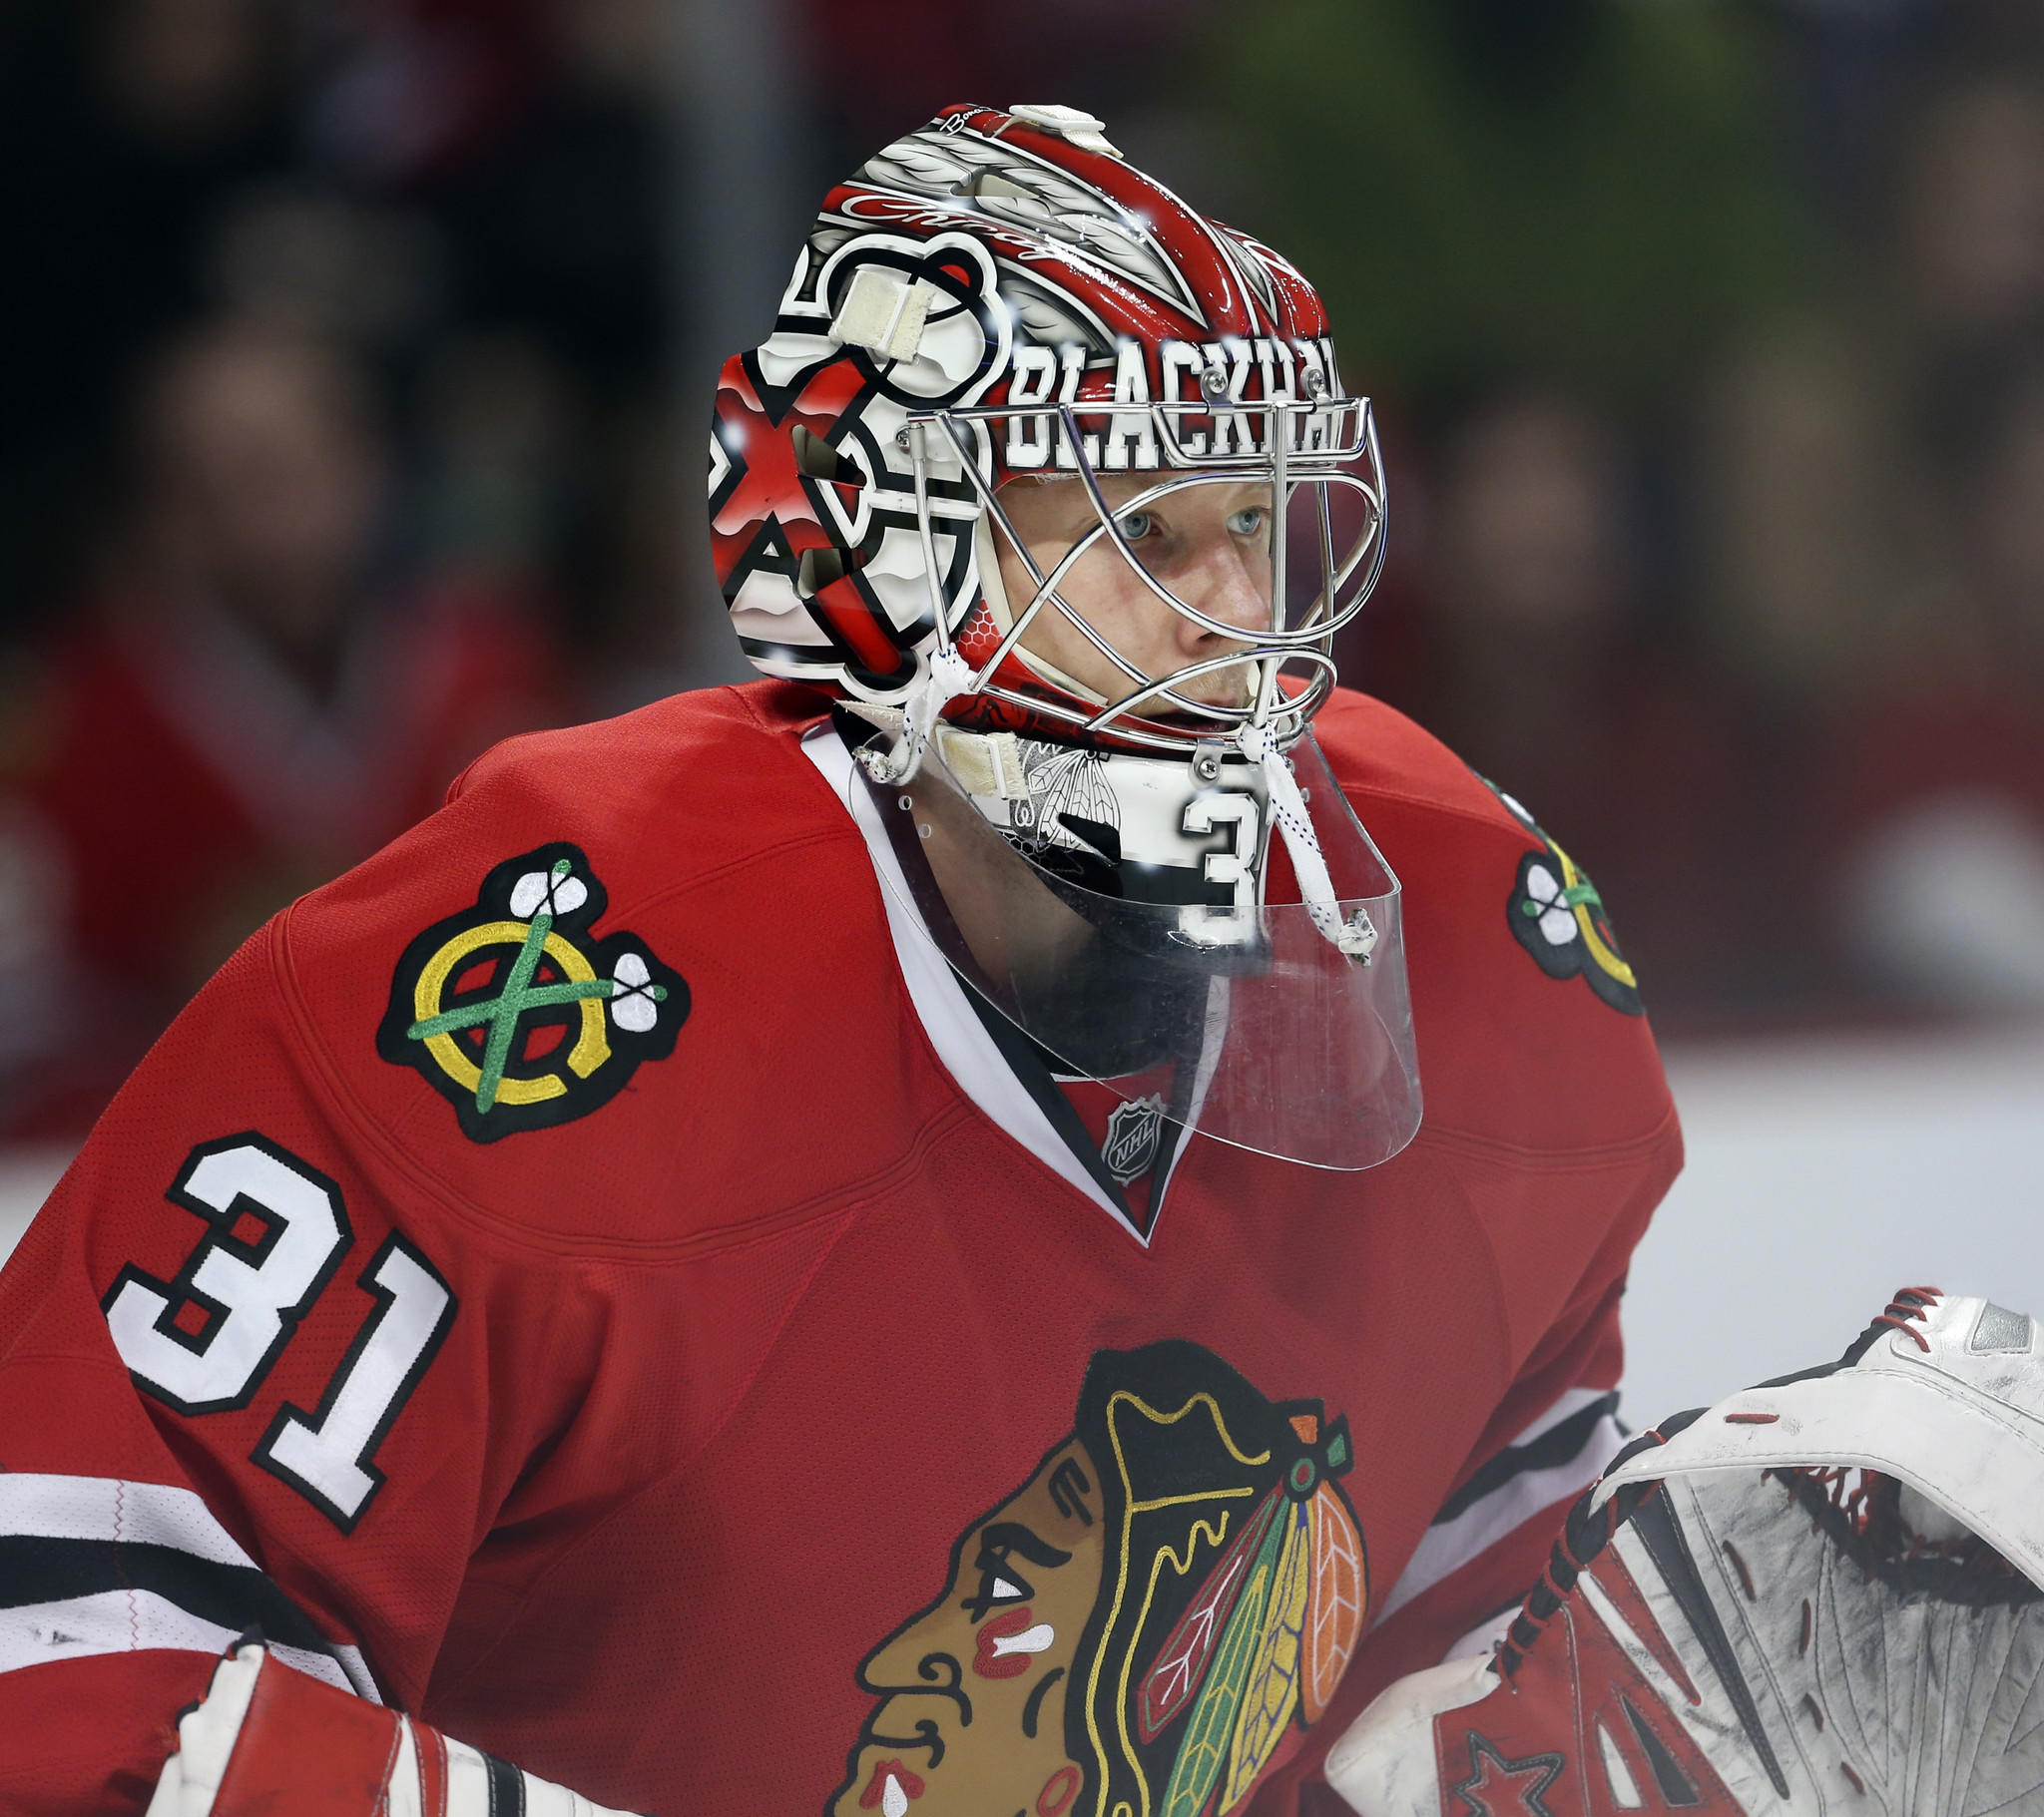 Chicago Blackhawks goalie Antti Raanta.